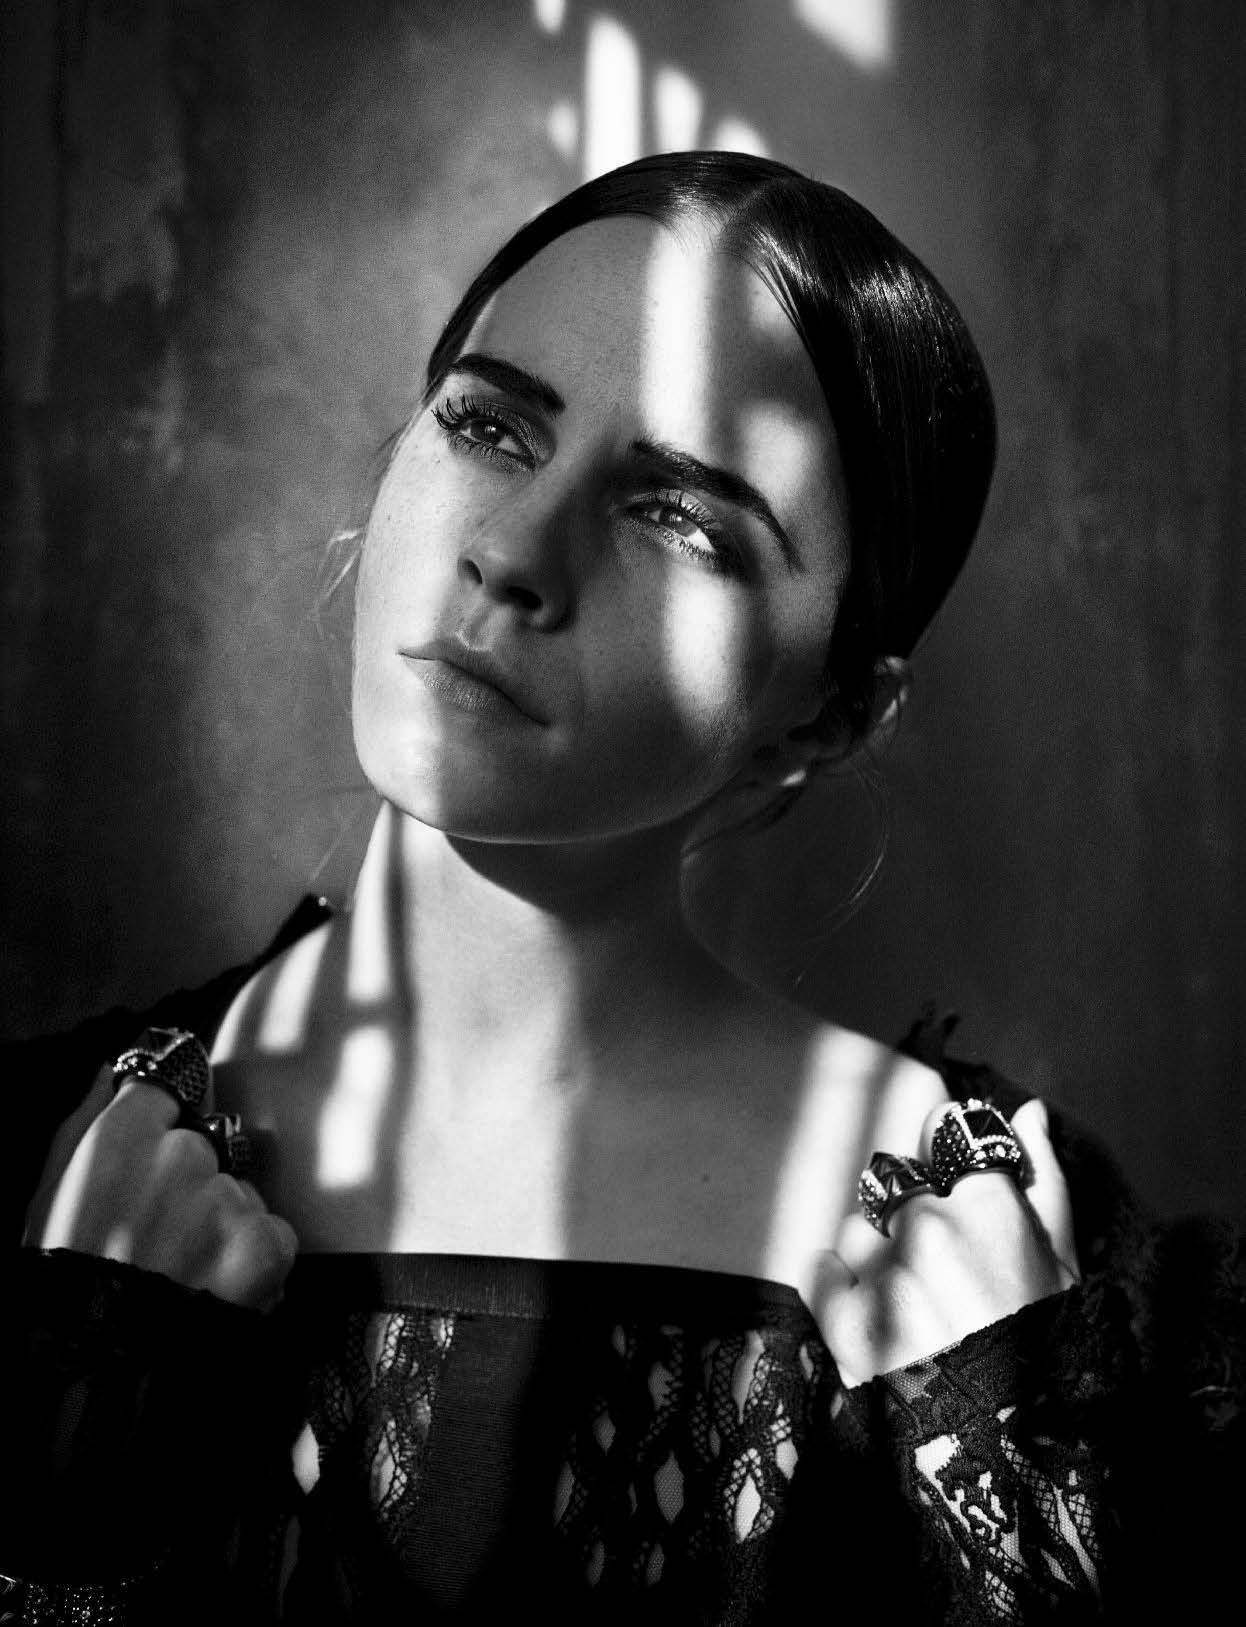 emma-watson-by-vincent-peters-for-vogue-italia-november-2015-Vincent-Peters-exposition-hune-paris-folkr-01